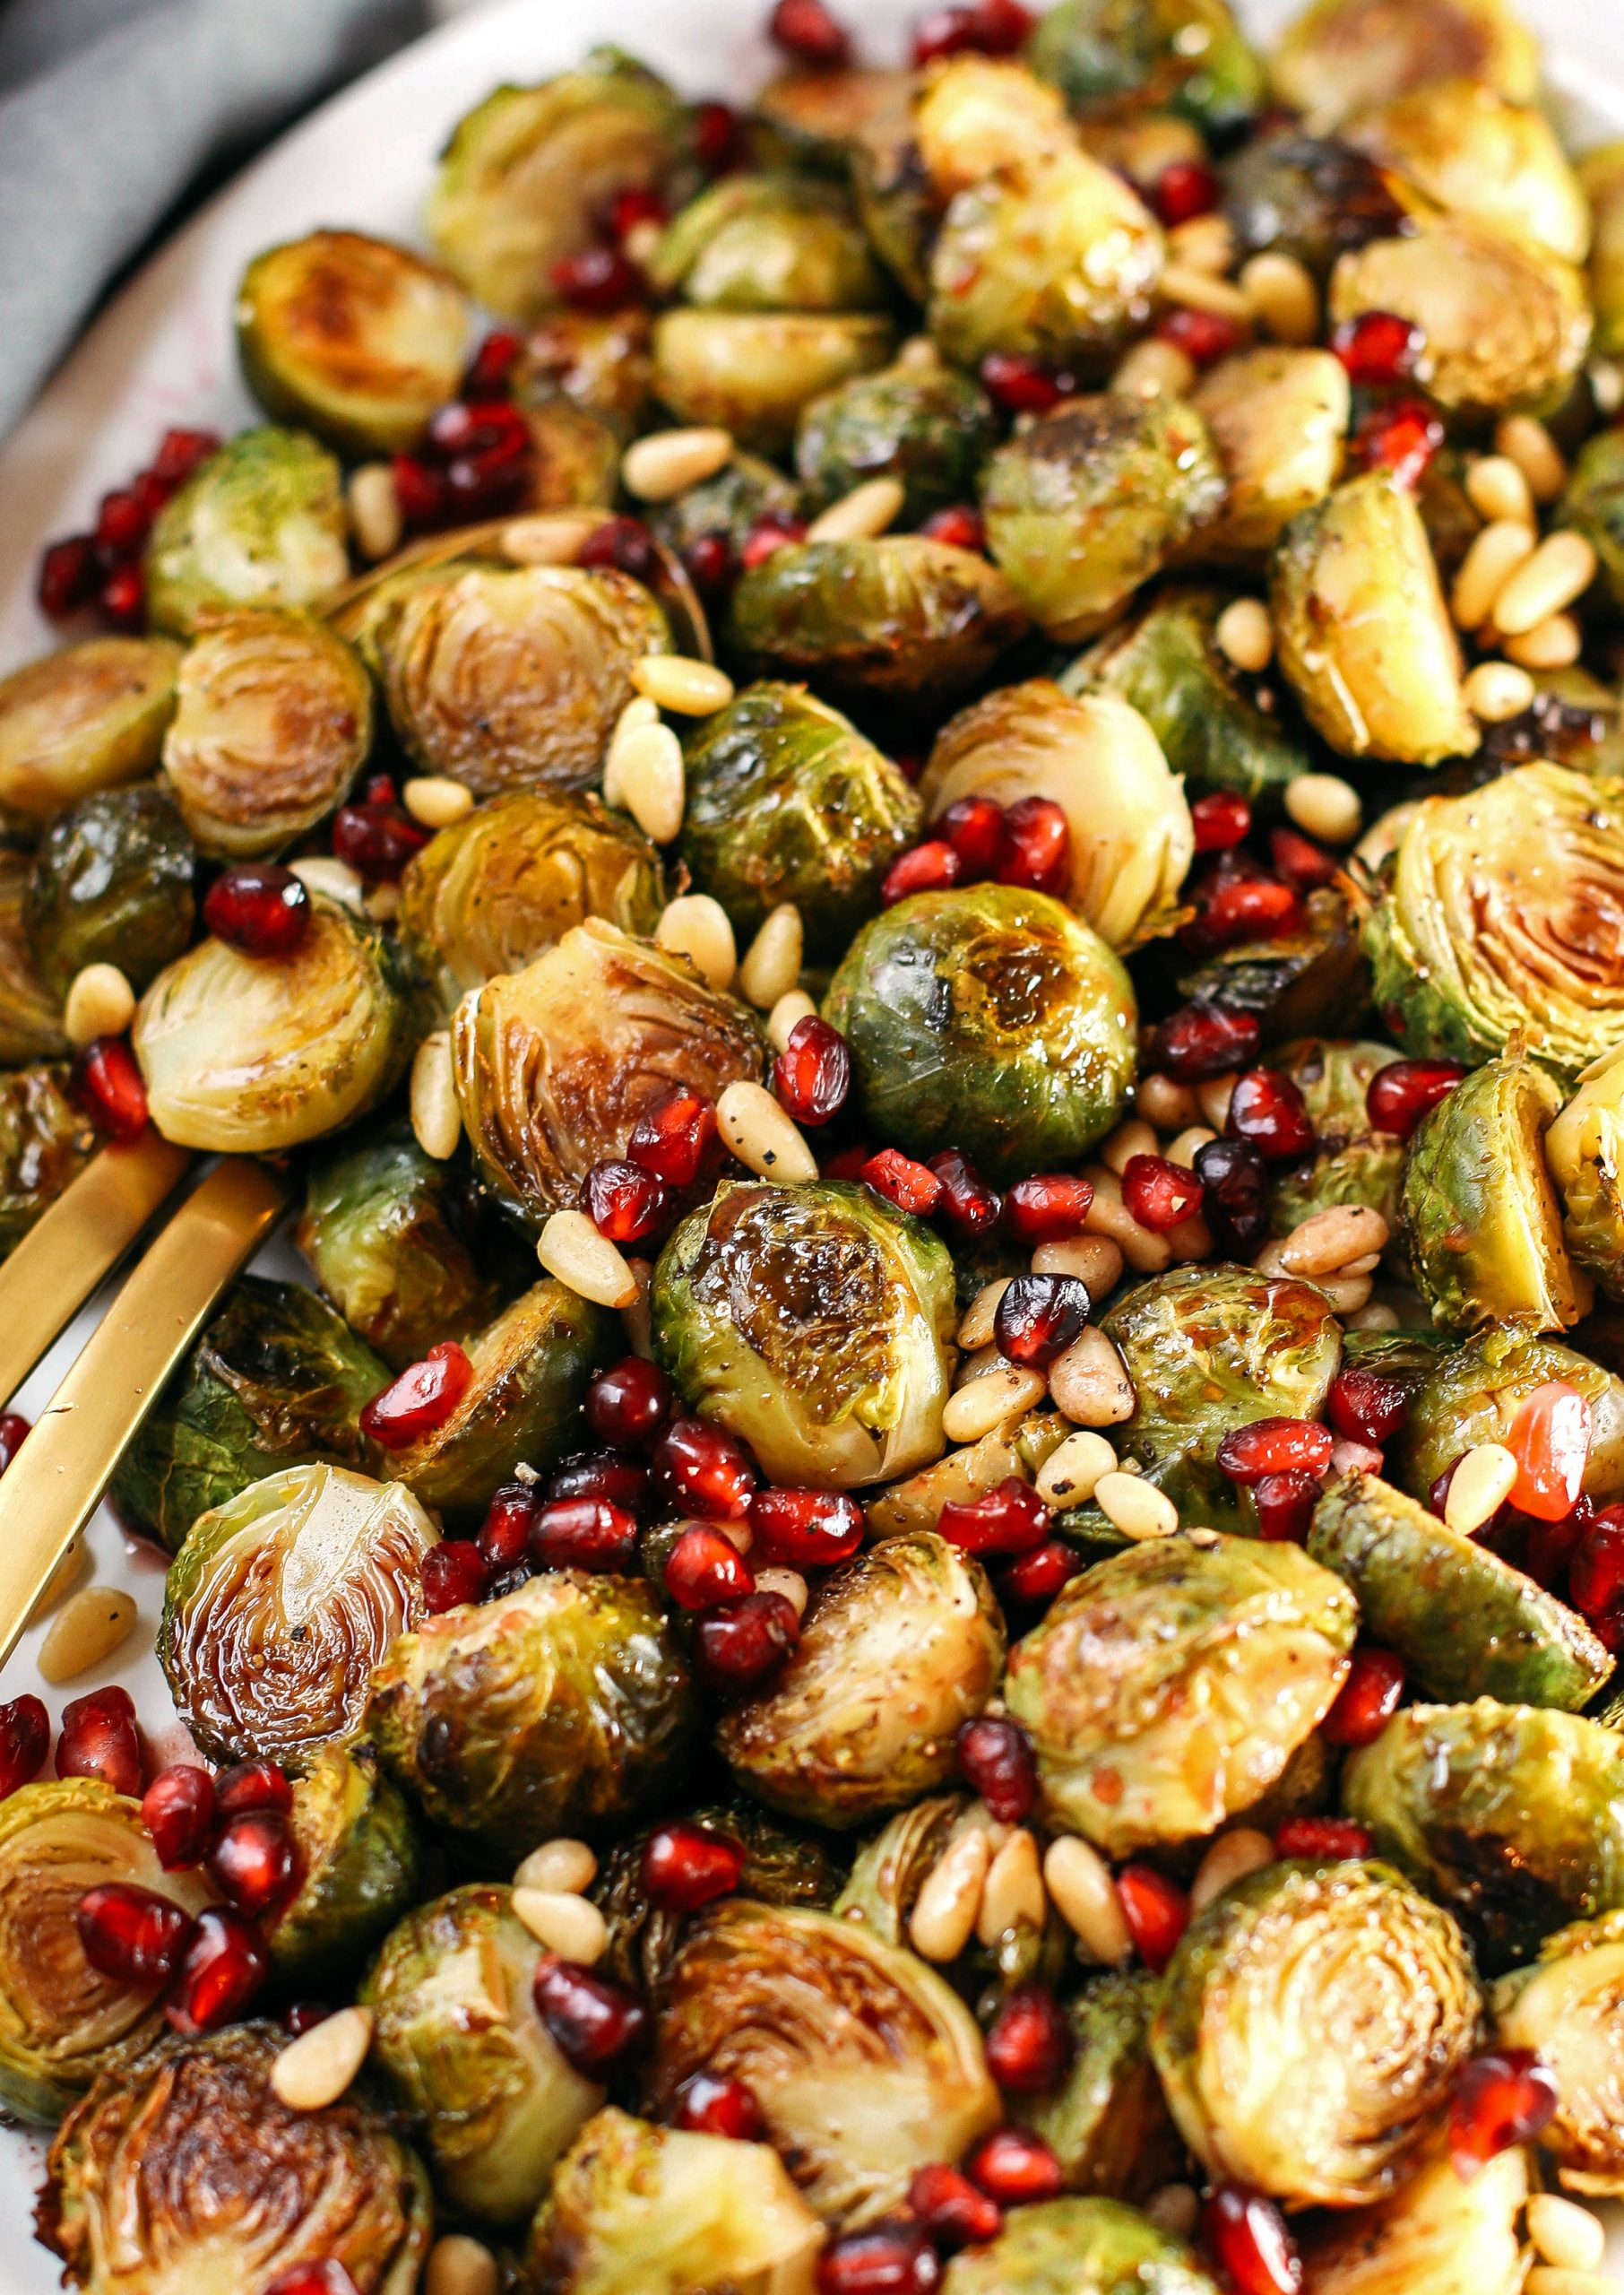 These Pomegranate Glazed Brussels Sprouts are savory, sweet and roasted to perfection making them the perfect holiday side dish for your table this season!